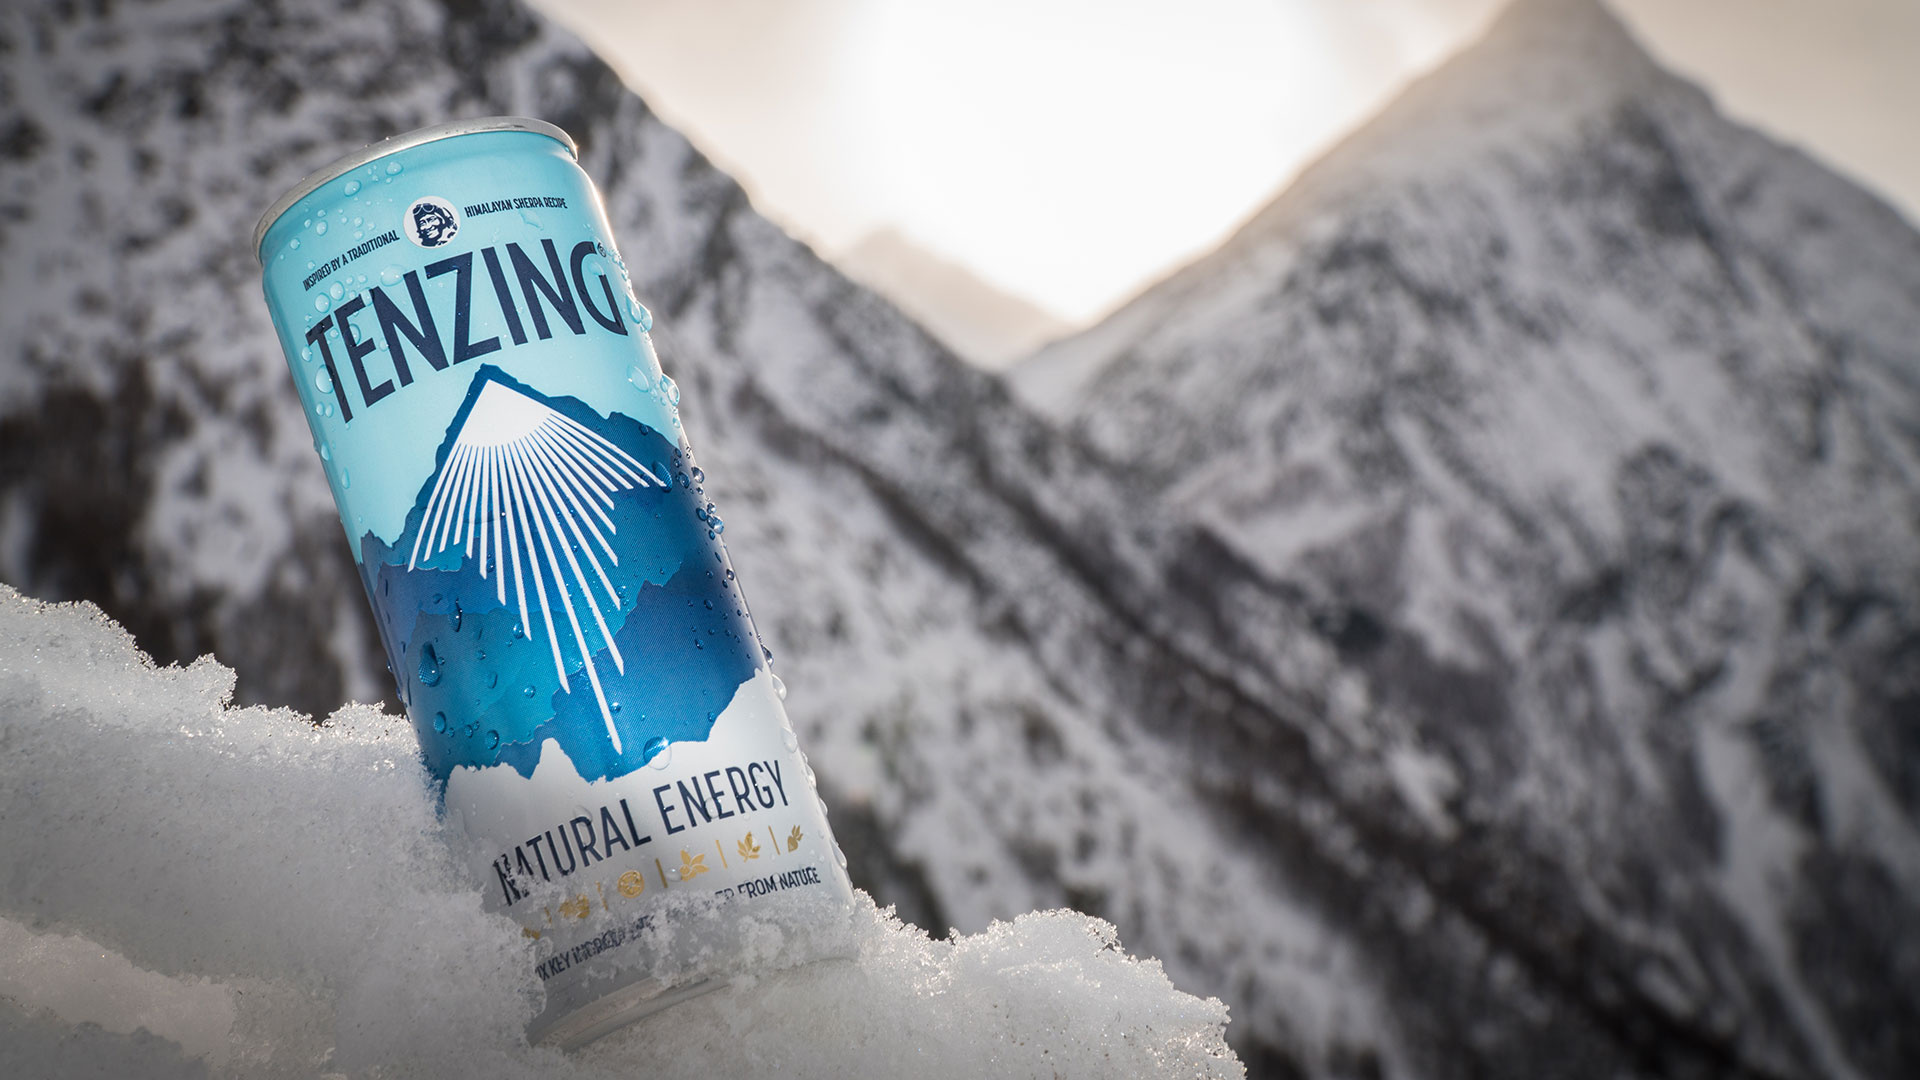 Tenzing's natural energy drink